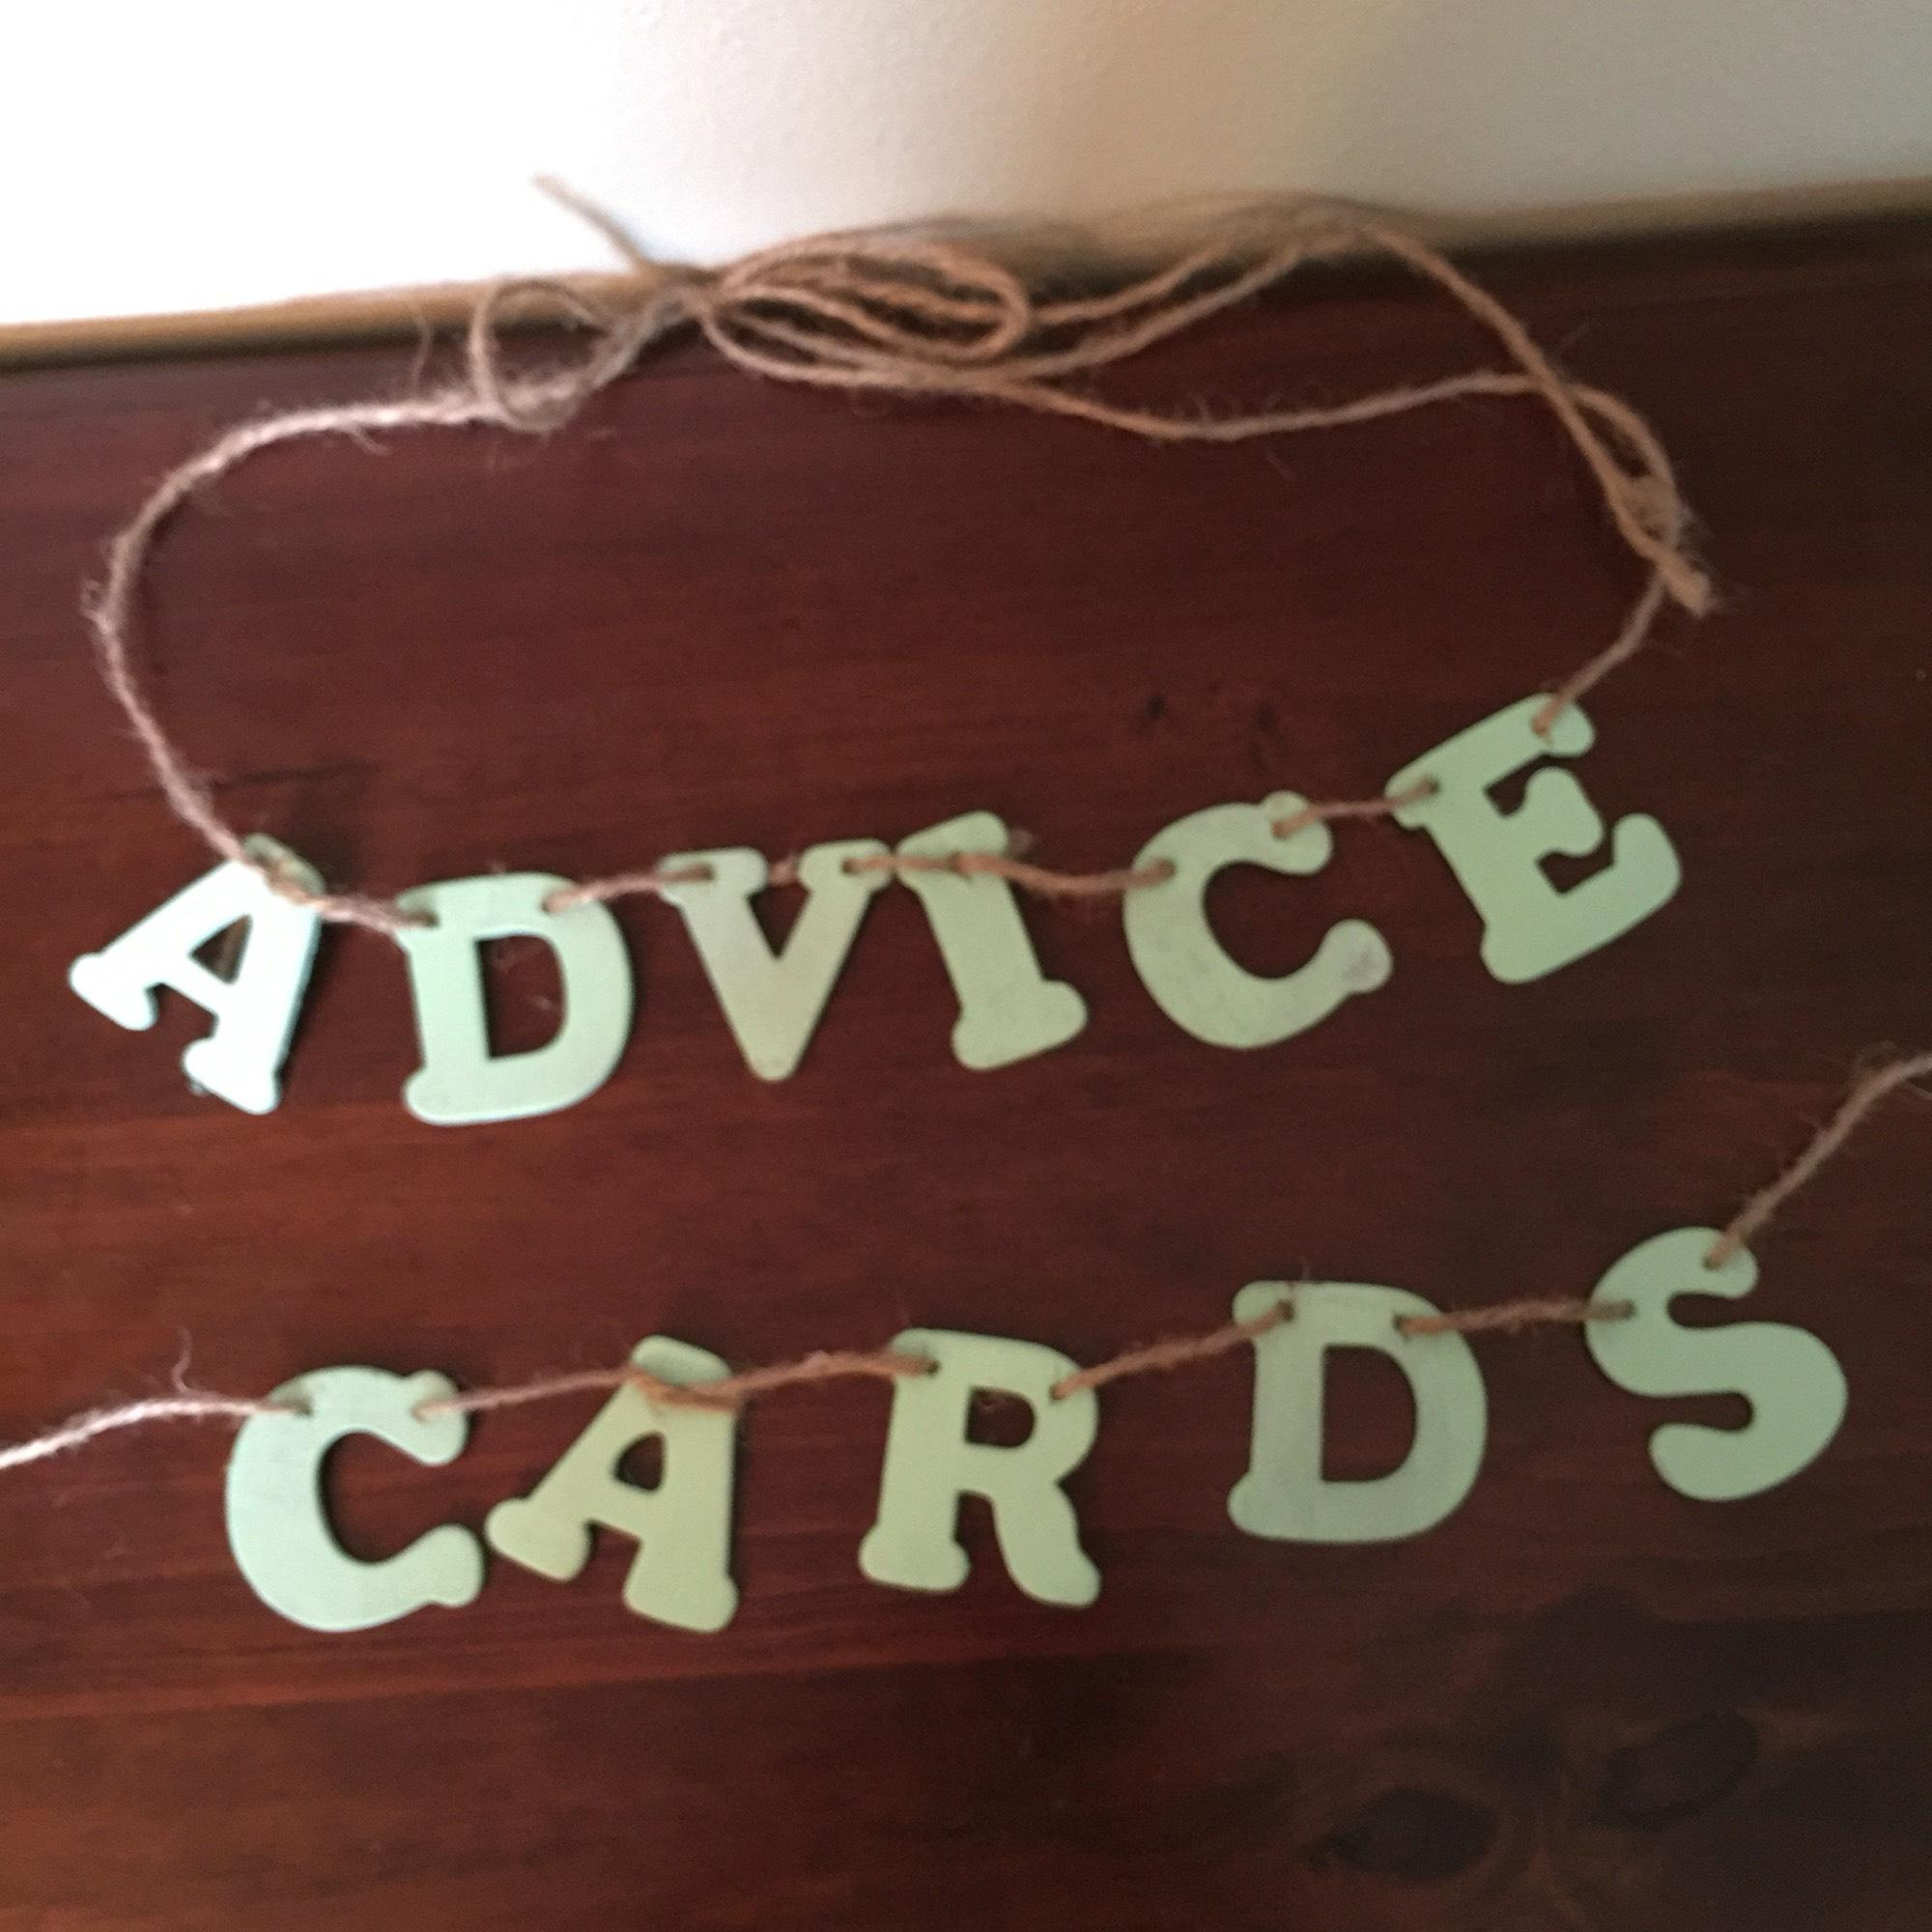 Advice and Cards Banner